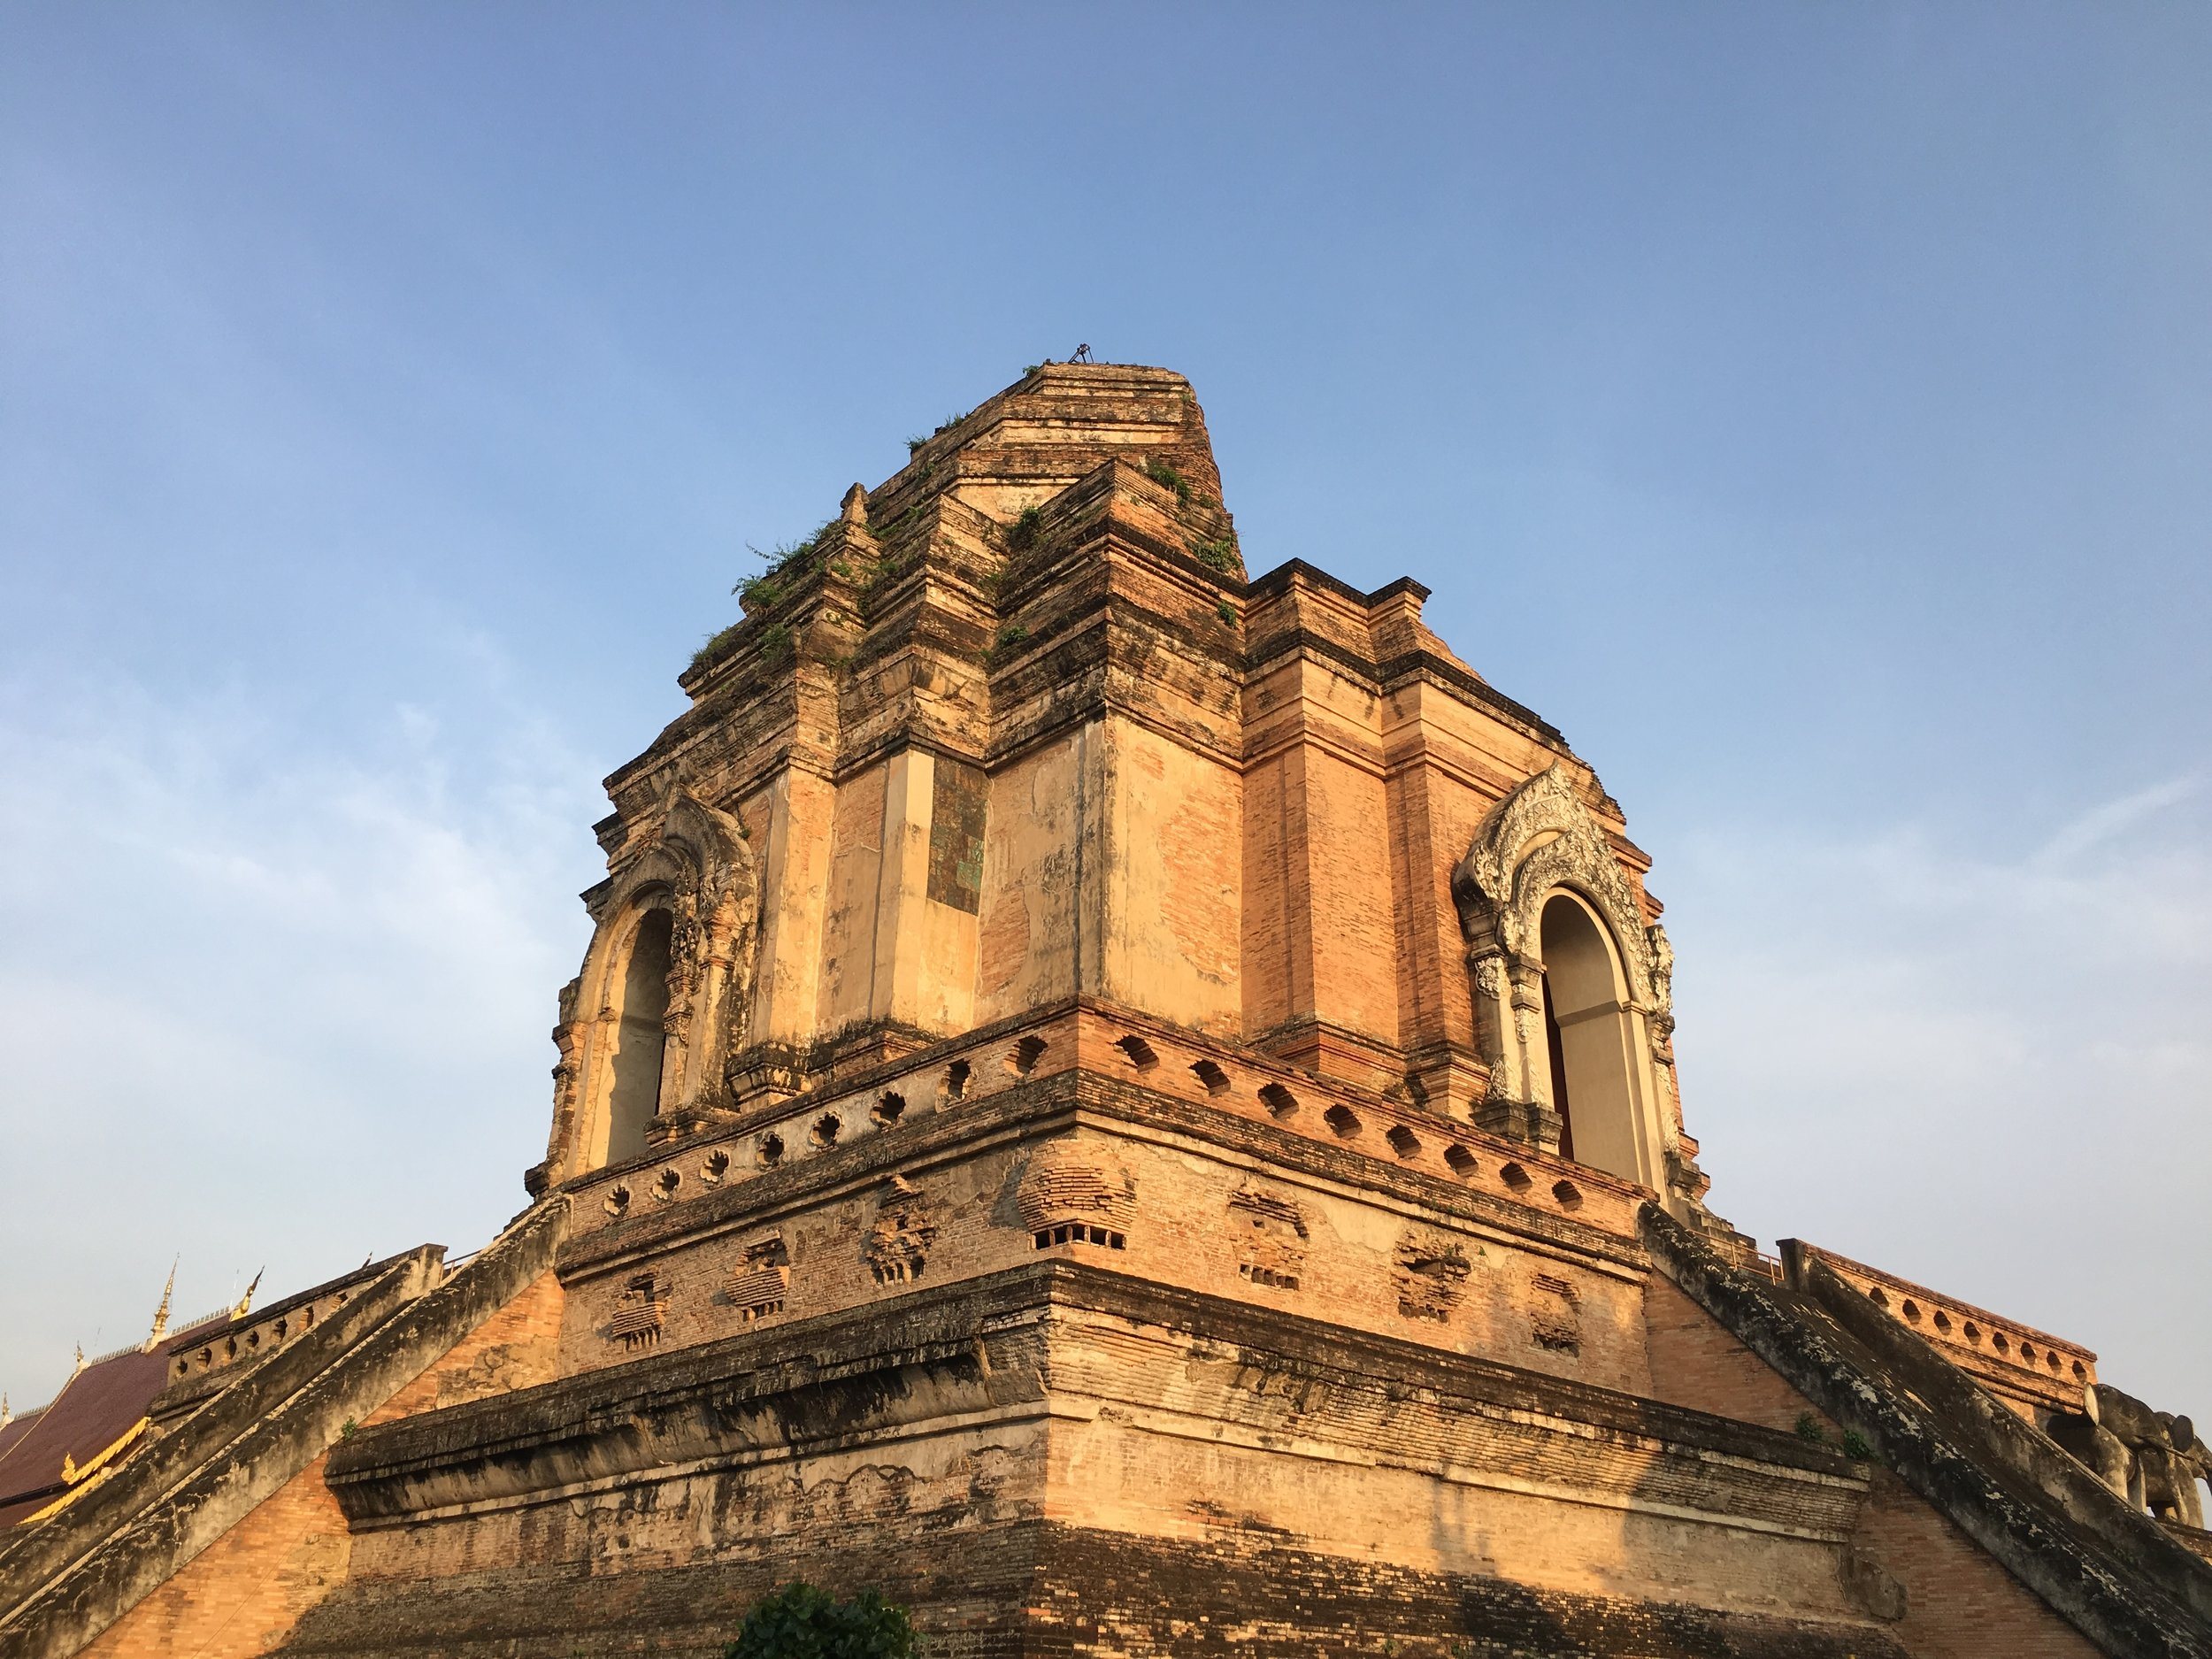 Wat Chedi Luang as it stands today. The building was completed during the reign of King Tilokoraj